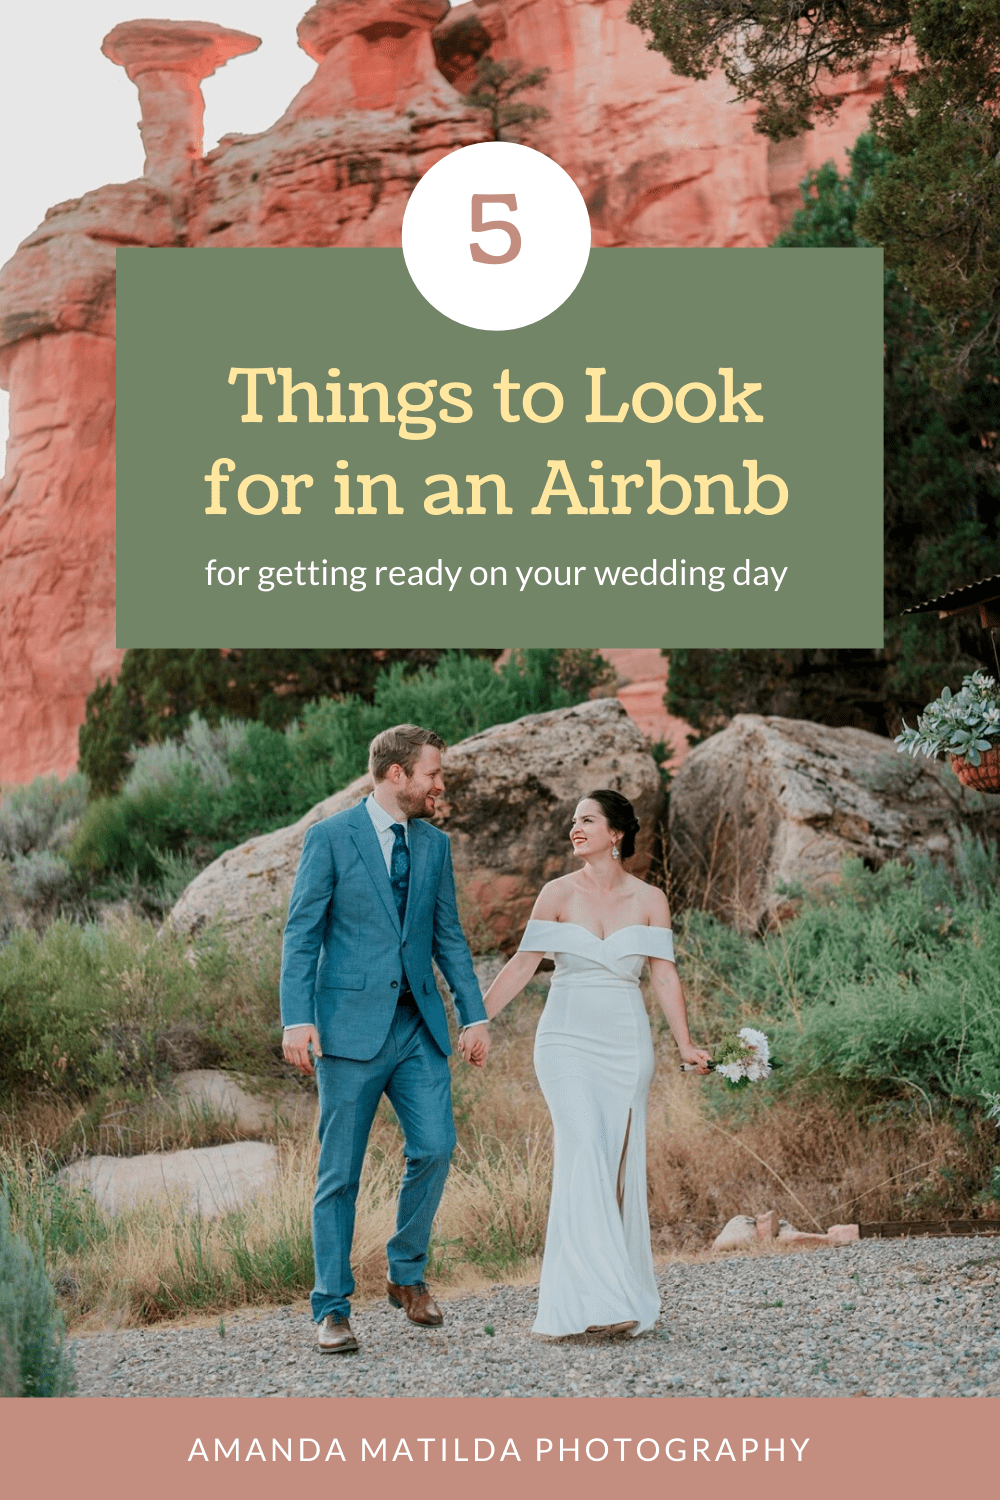 What to Look for in an Airbnb for Getting Ready on your Wedding Day | Amanda Matilda Photography